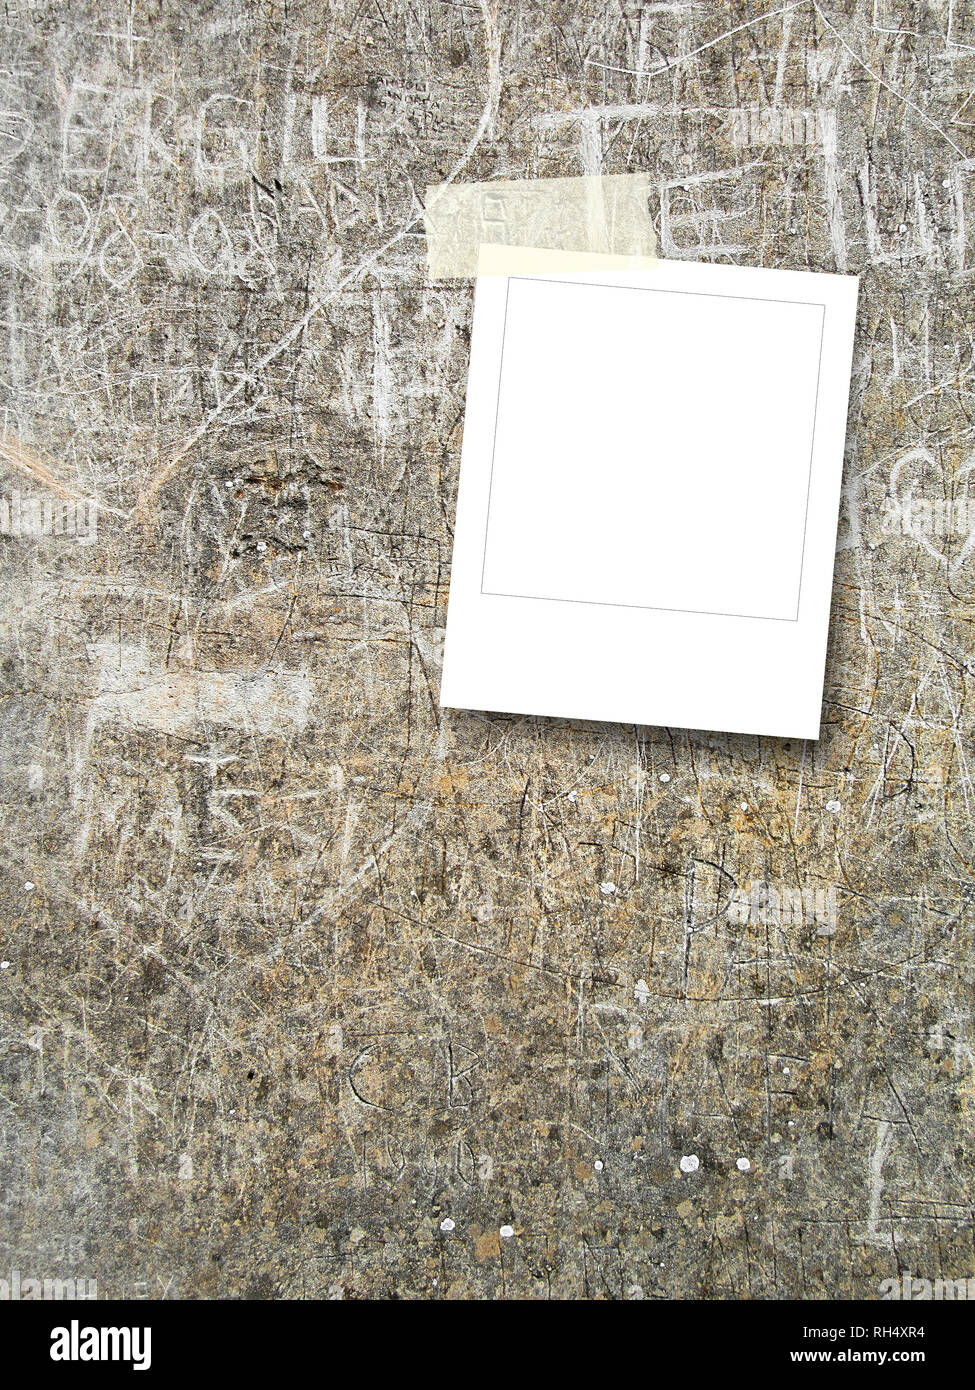 Blank square instant photo frame on concrete wall background - Stock Image